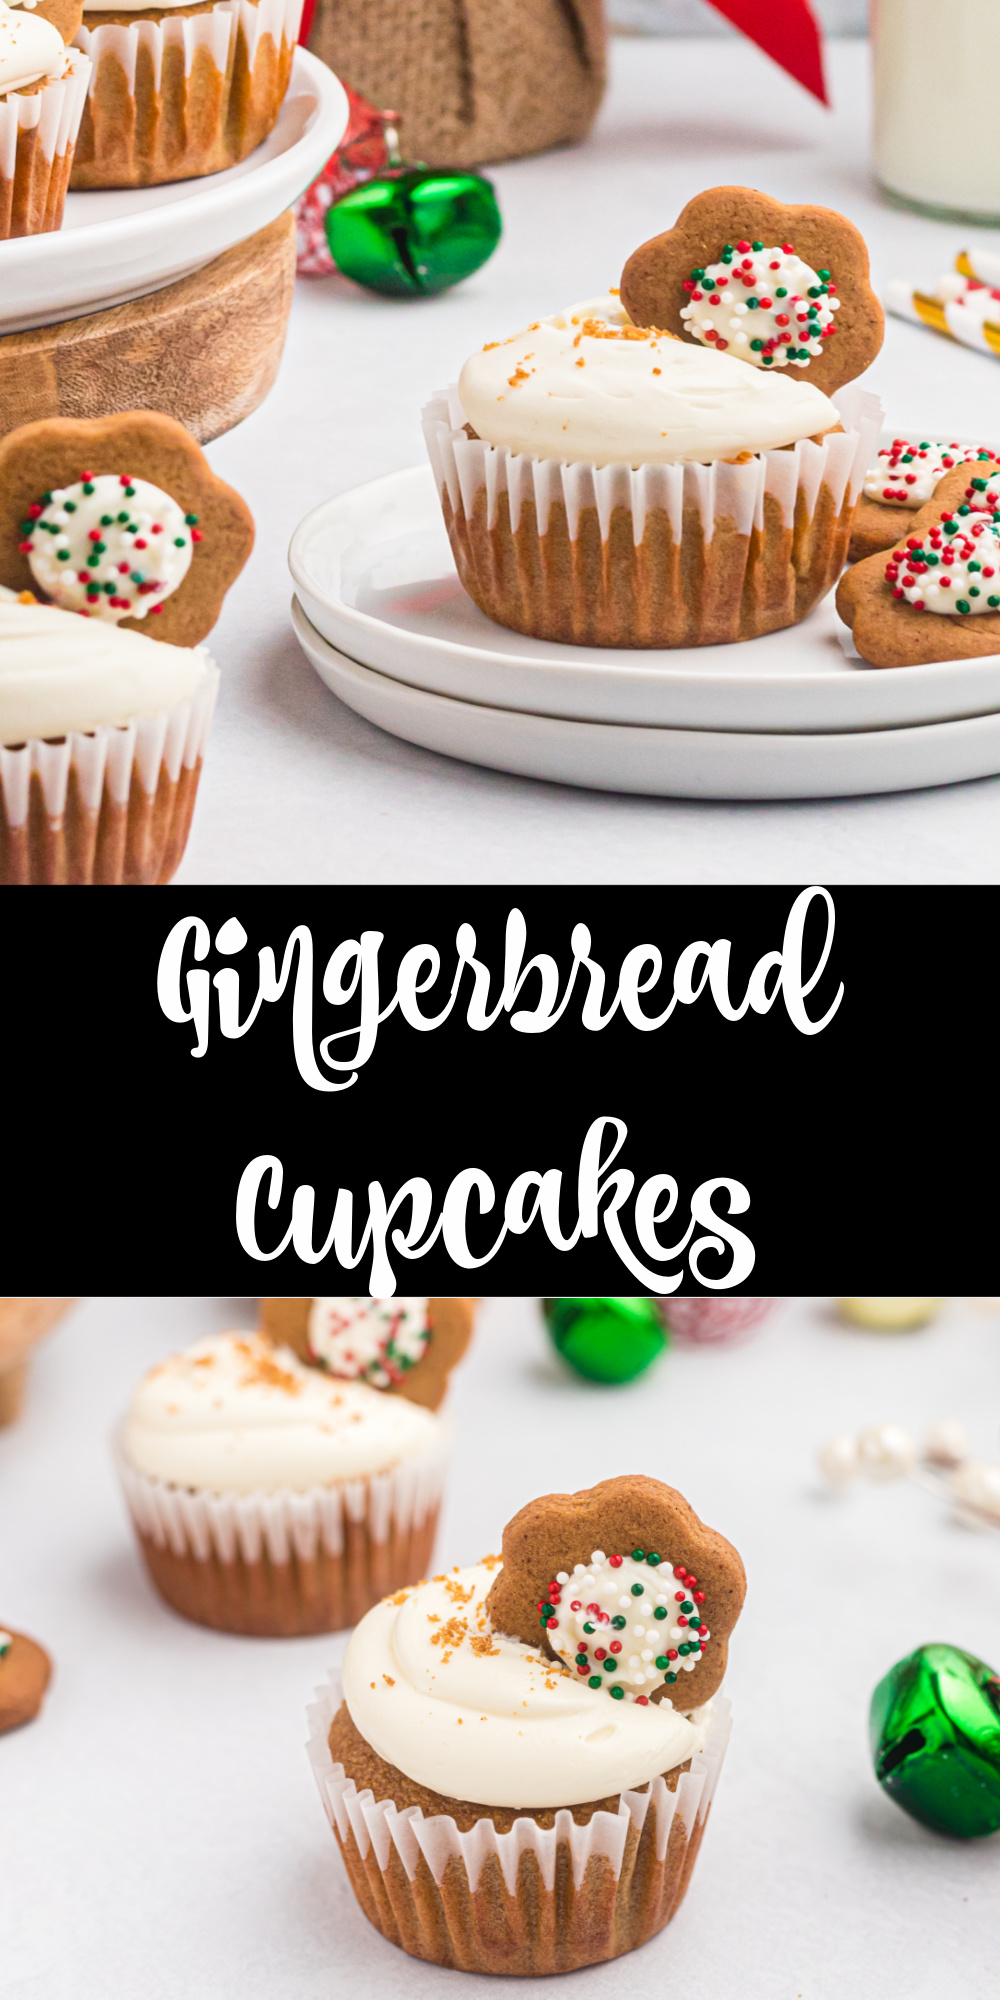 Do you love gingerbread cookies? If so you have to make these Gingerbread cupcakes for the holiday season! These just might be my favorite Christmas cupcakes full of warm spices. Perfect for holiday parties or an easy Christmas time dessert